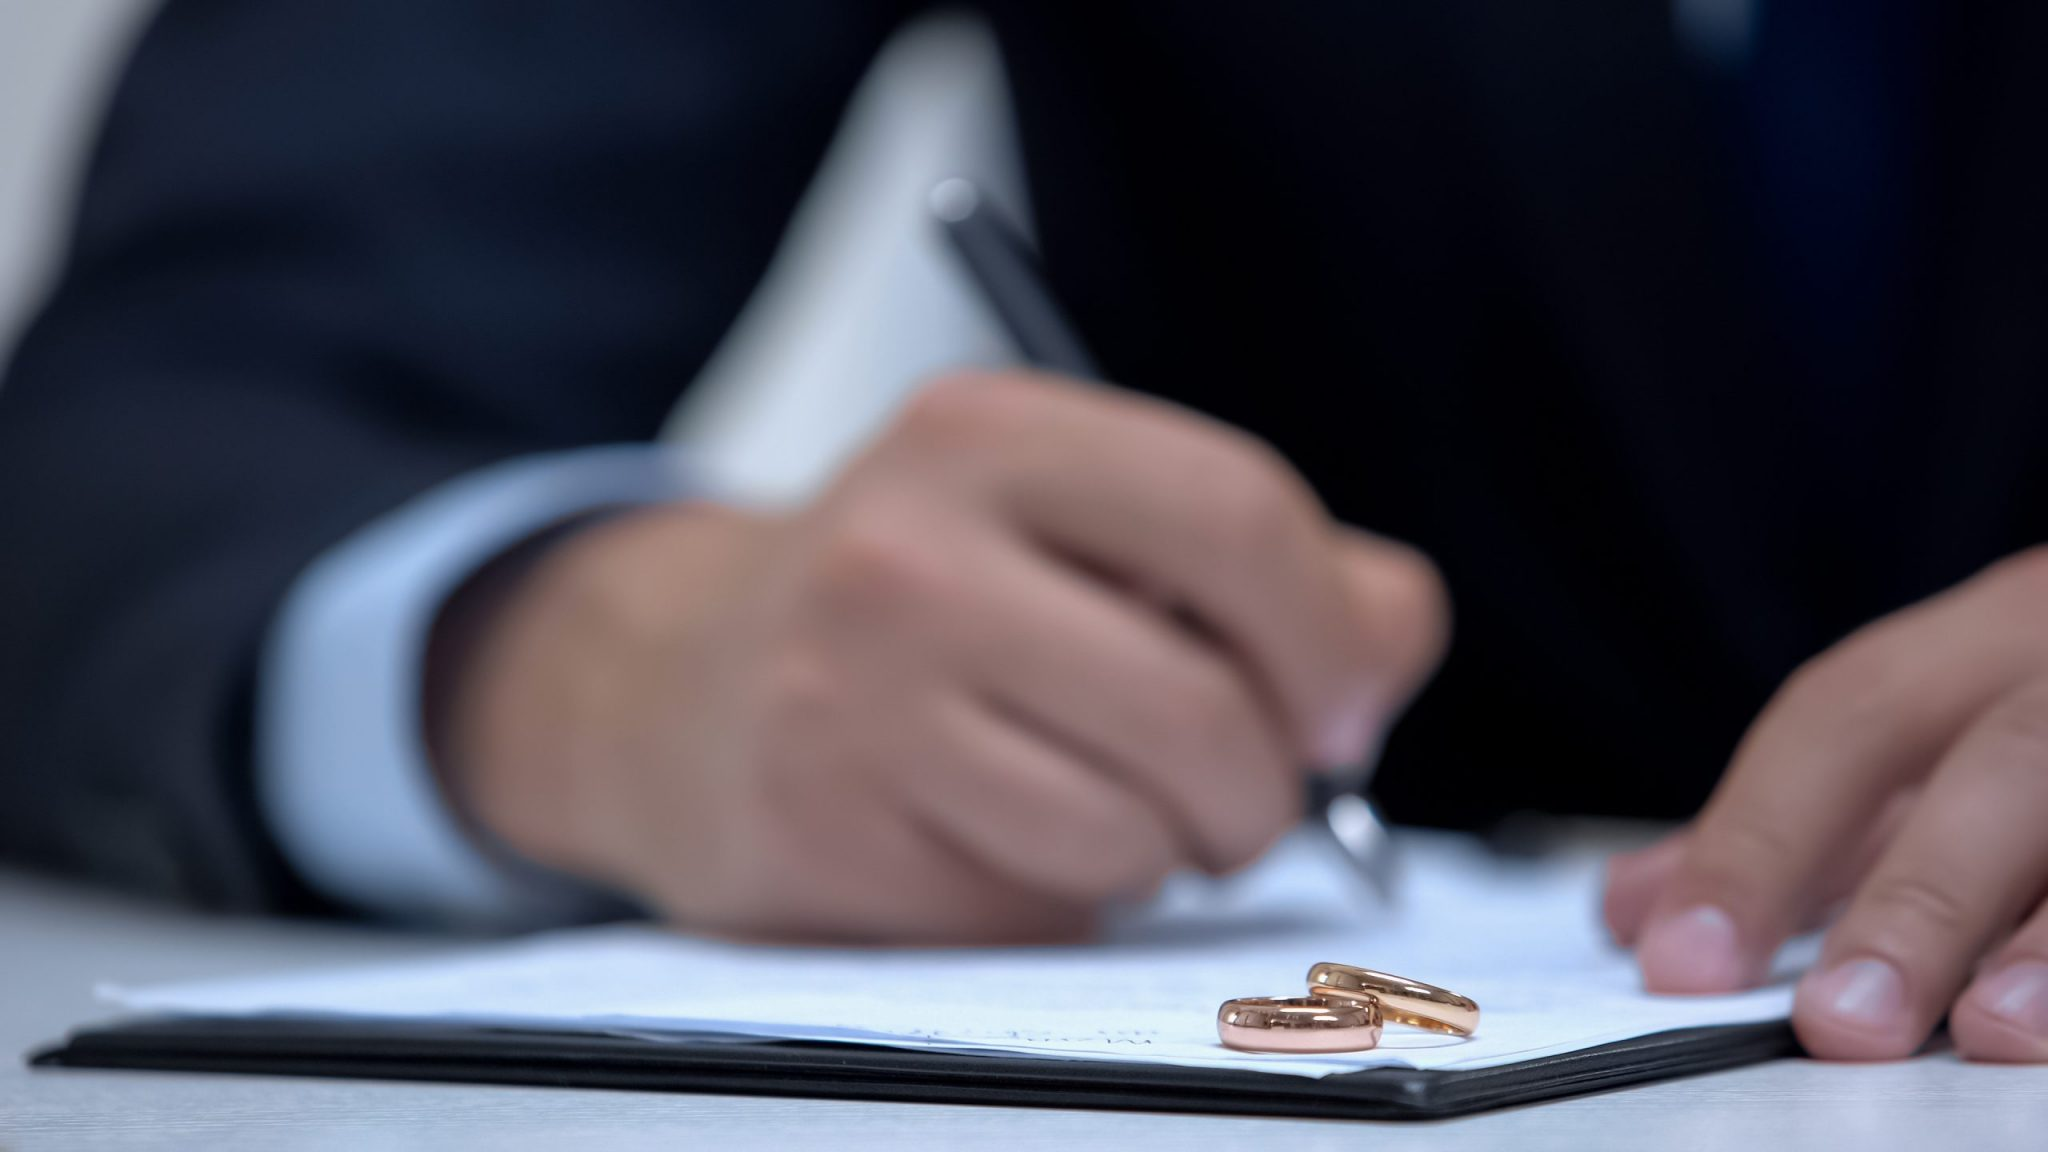 An image of two wedding rings lying on a divorce document, discuss your case with a Highland Park family law attorney